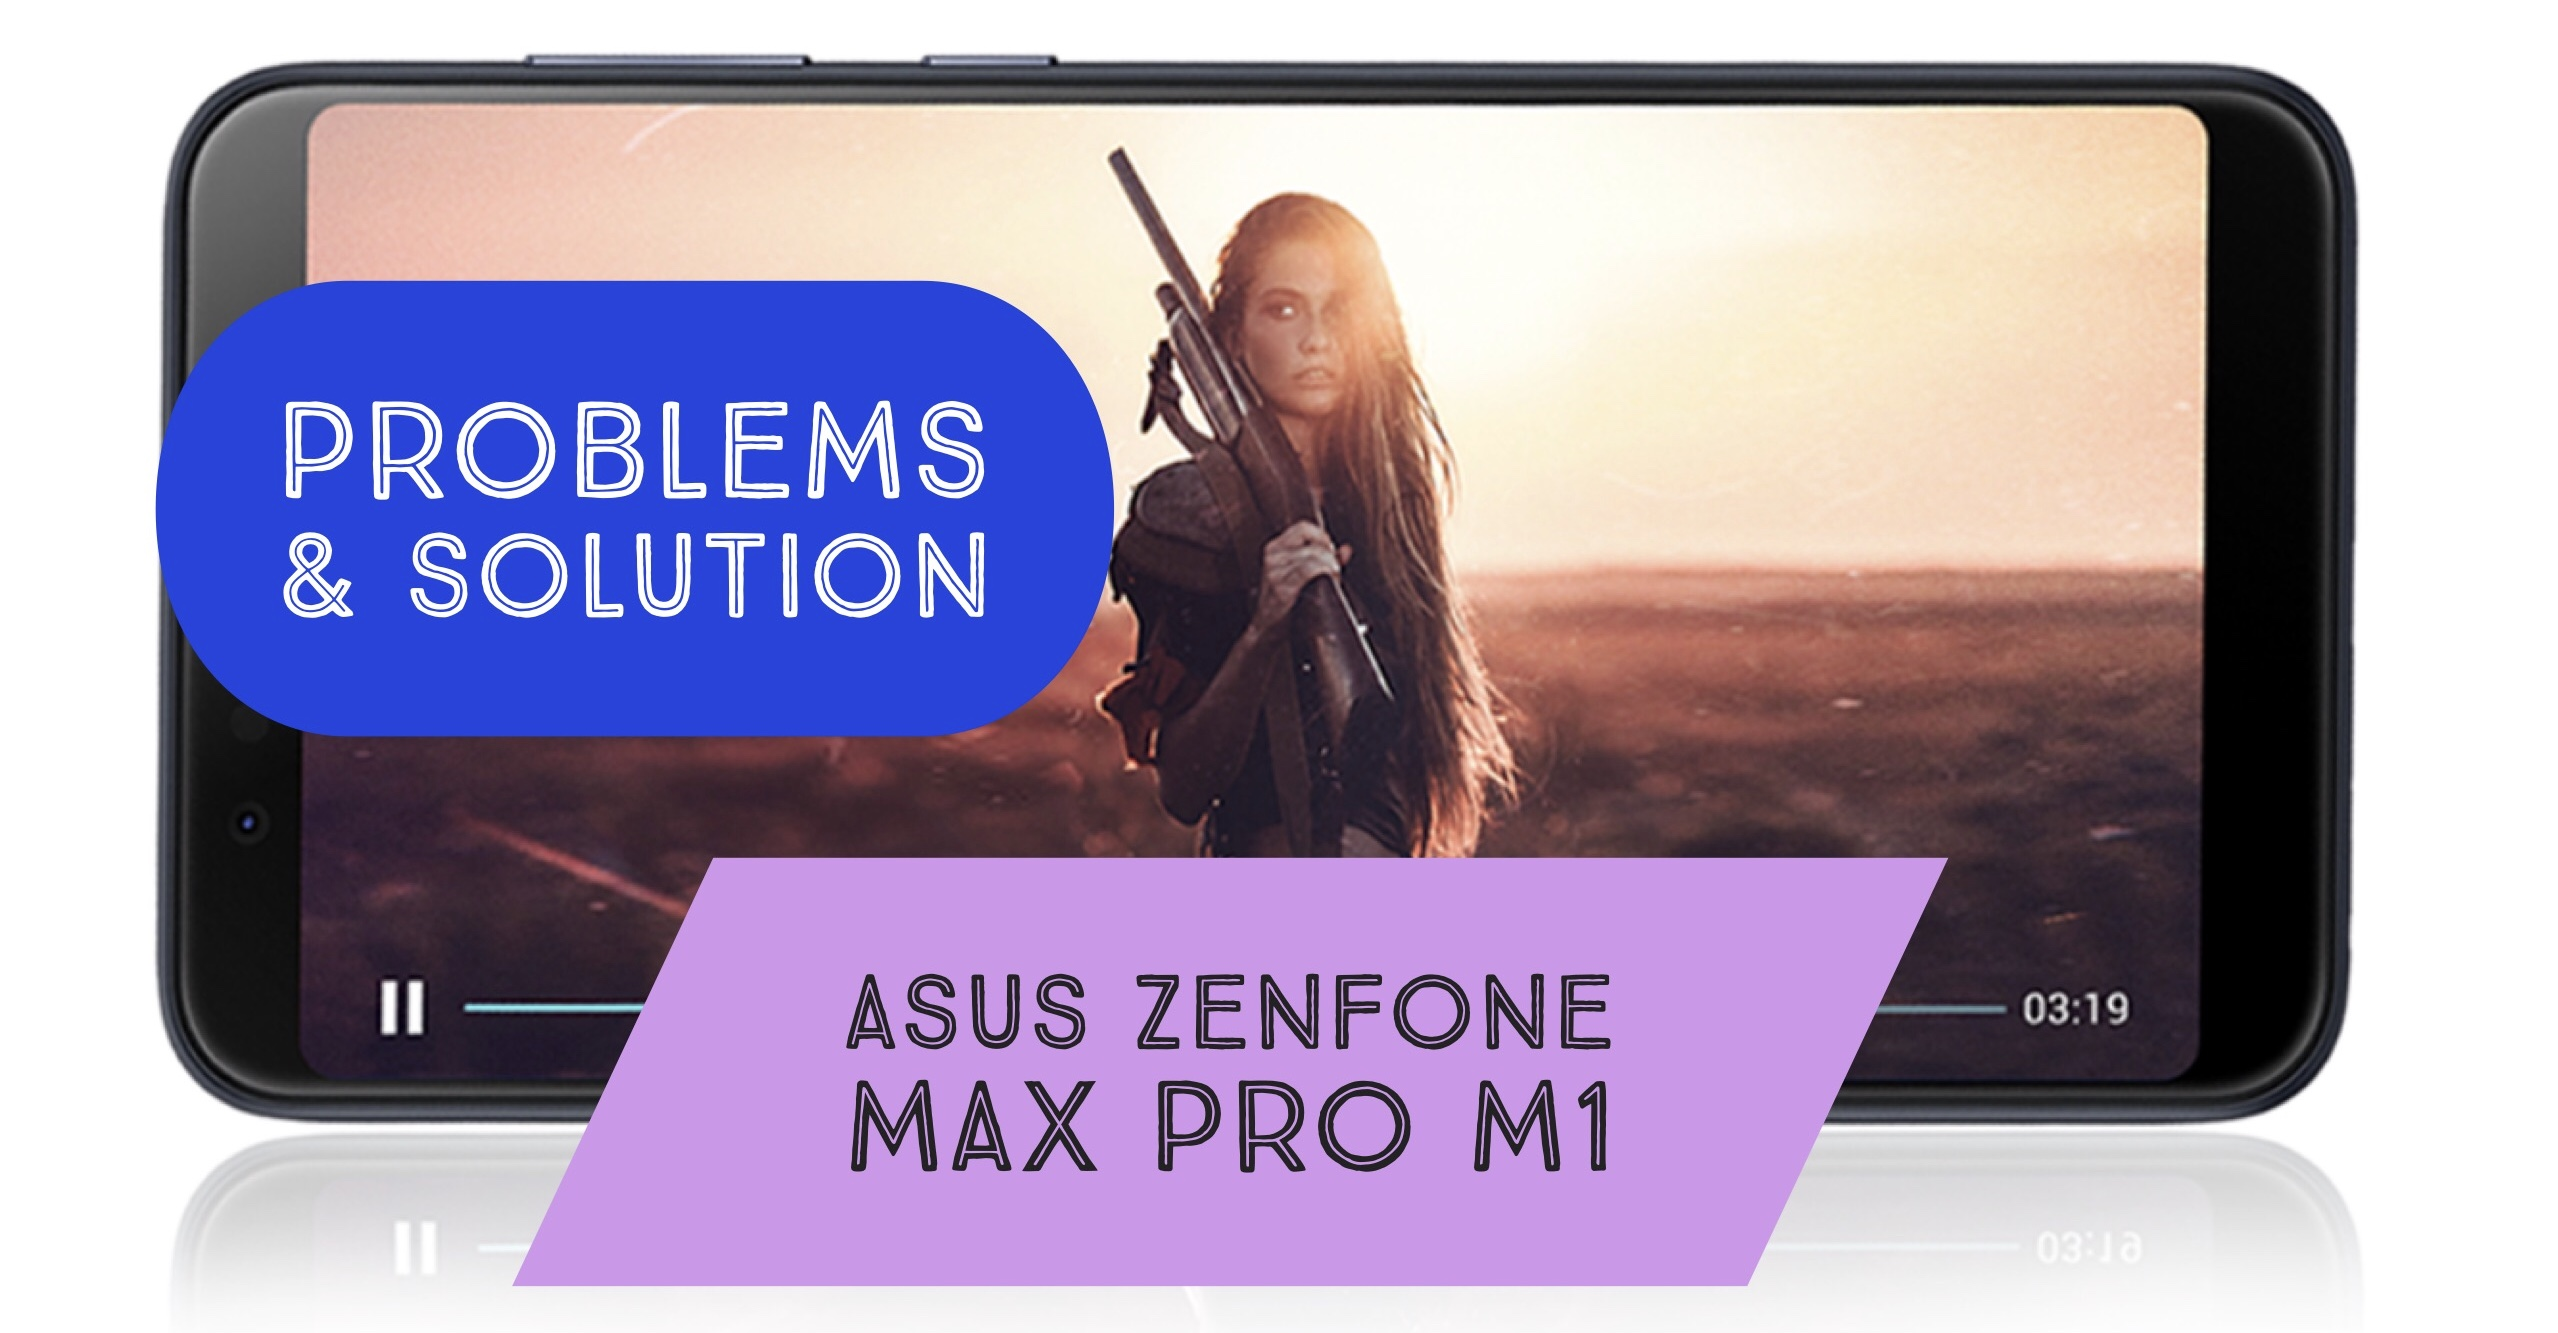 Asus Zenfone Max Pro M1 Problems & How to Fix Them: Tips